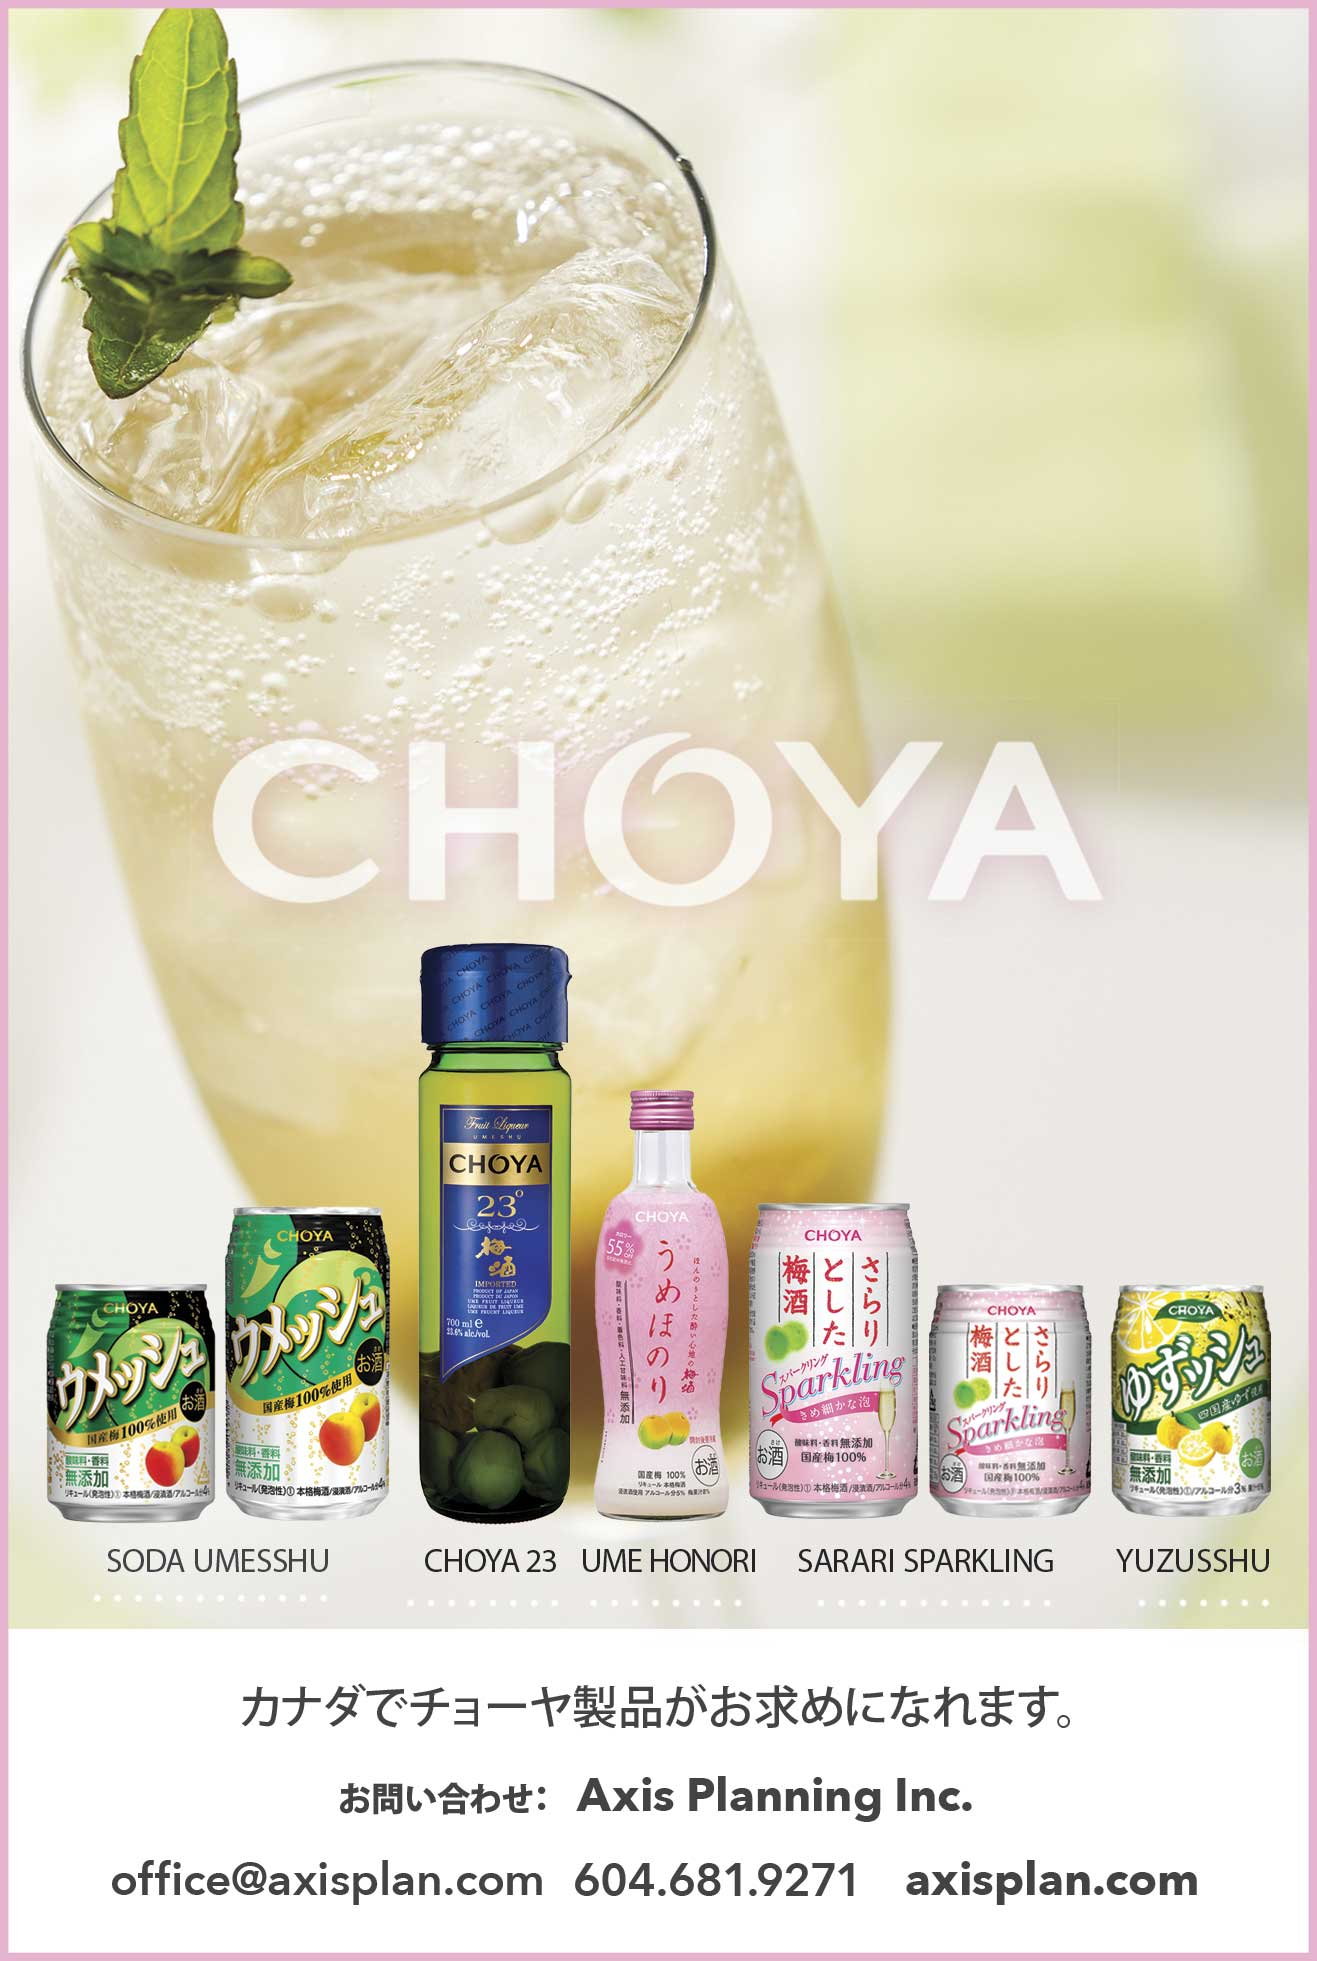 ChoyaOops_2016Apr_Ad_soda